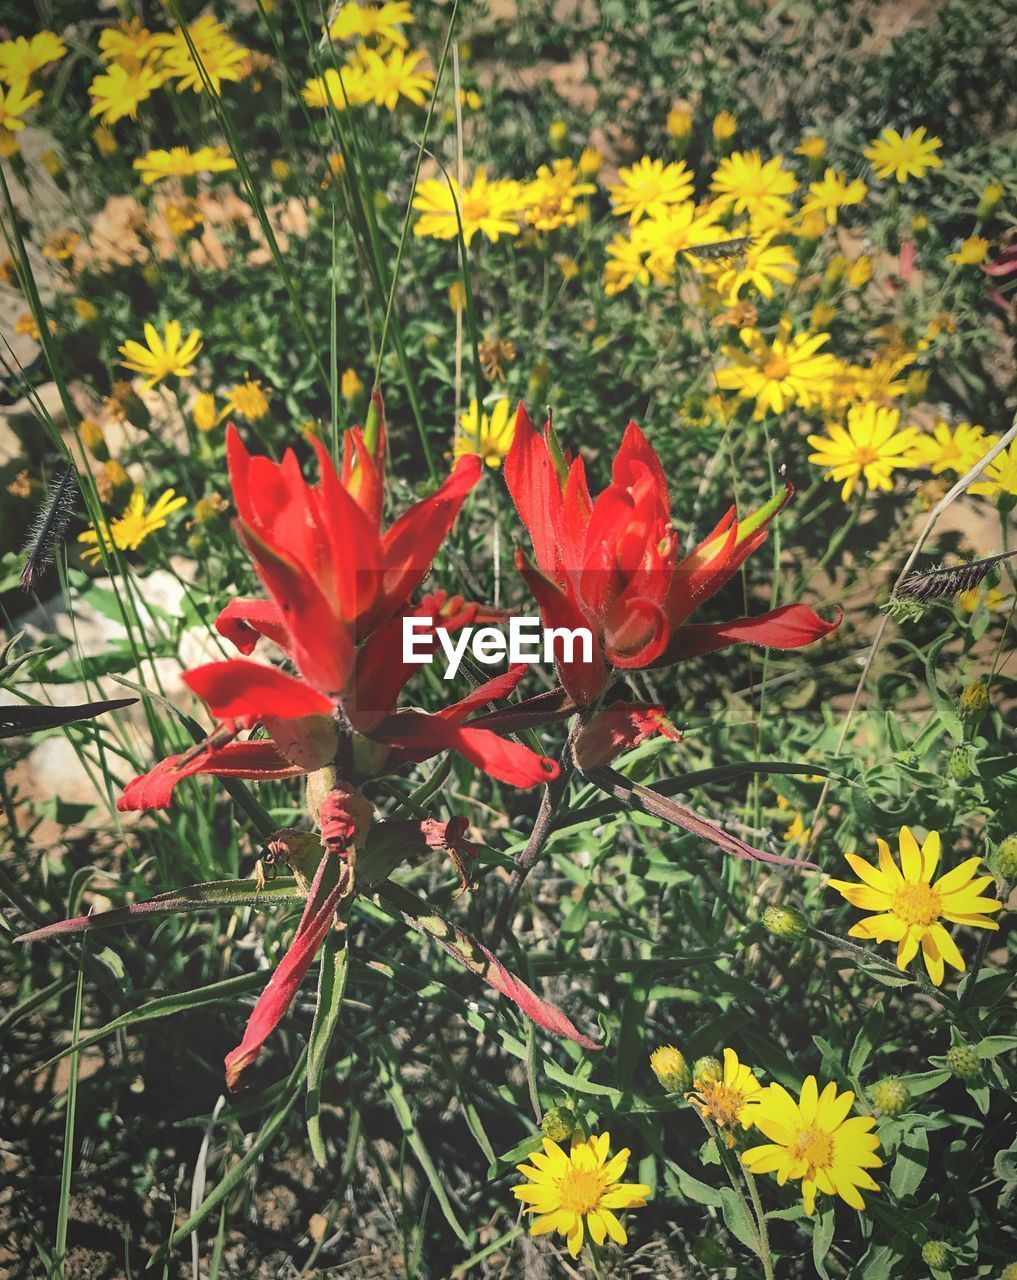 flowering plant, flower, fragility, vulnerability, freshness, beauty in nature, plant, growth, petal, flower head, inflorescence, red, close-up, nature, land, field, no people, day, yellow, botany, outdoors, pollen, flowerbed